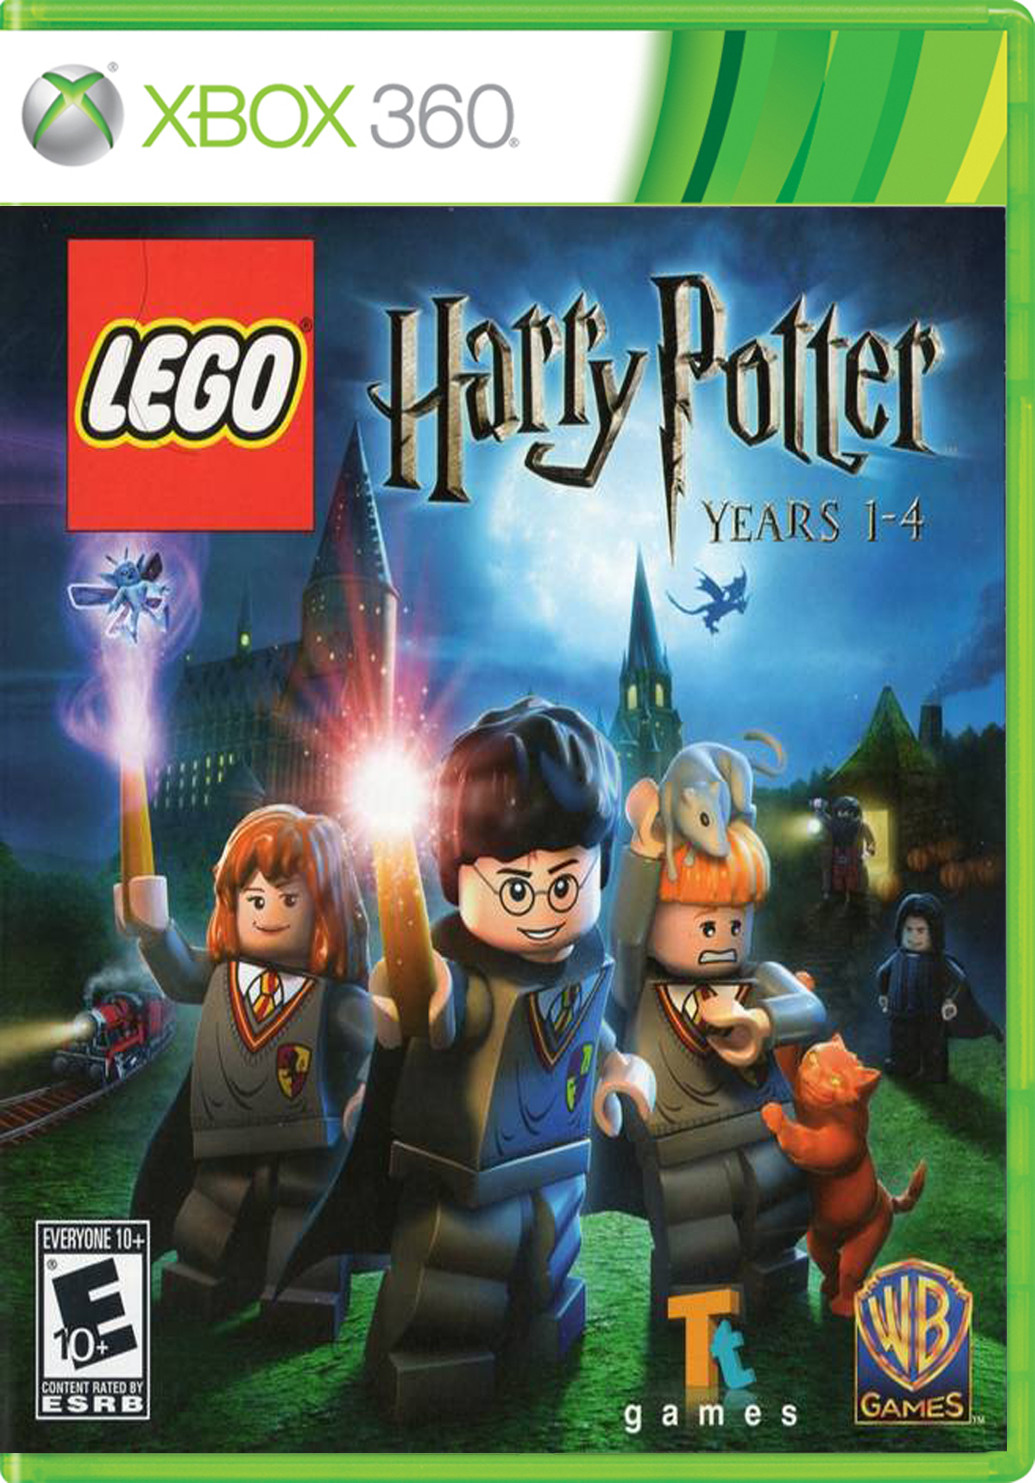 LEGO HARRY POTTER YEARS 1-4 para 360 - GamePlanet